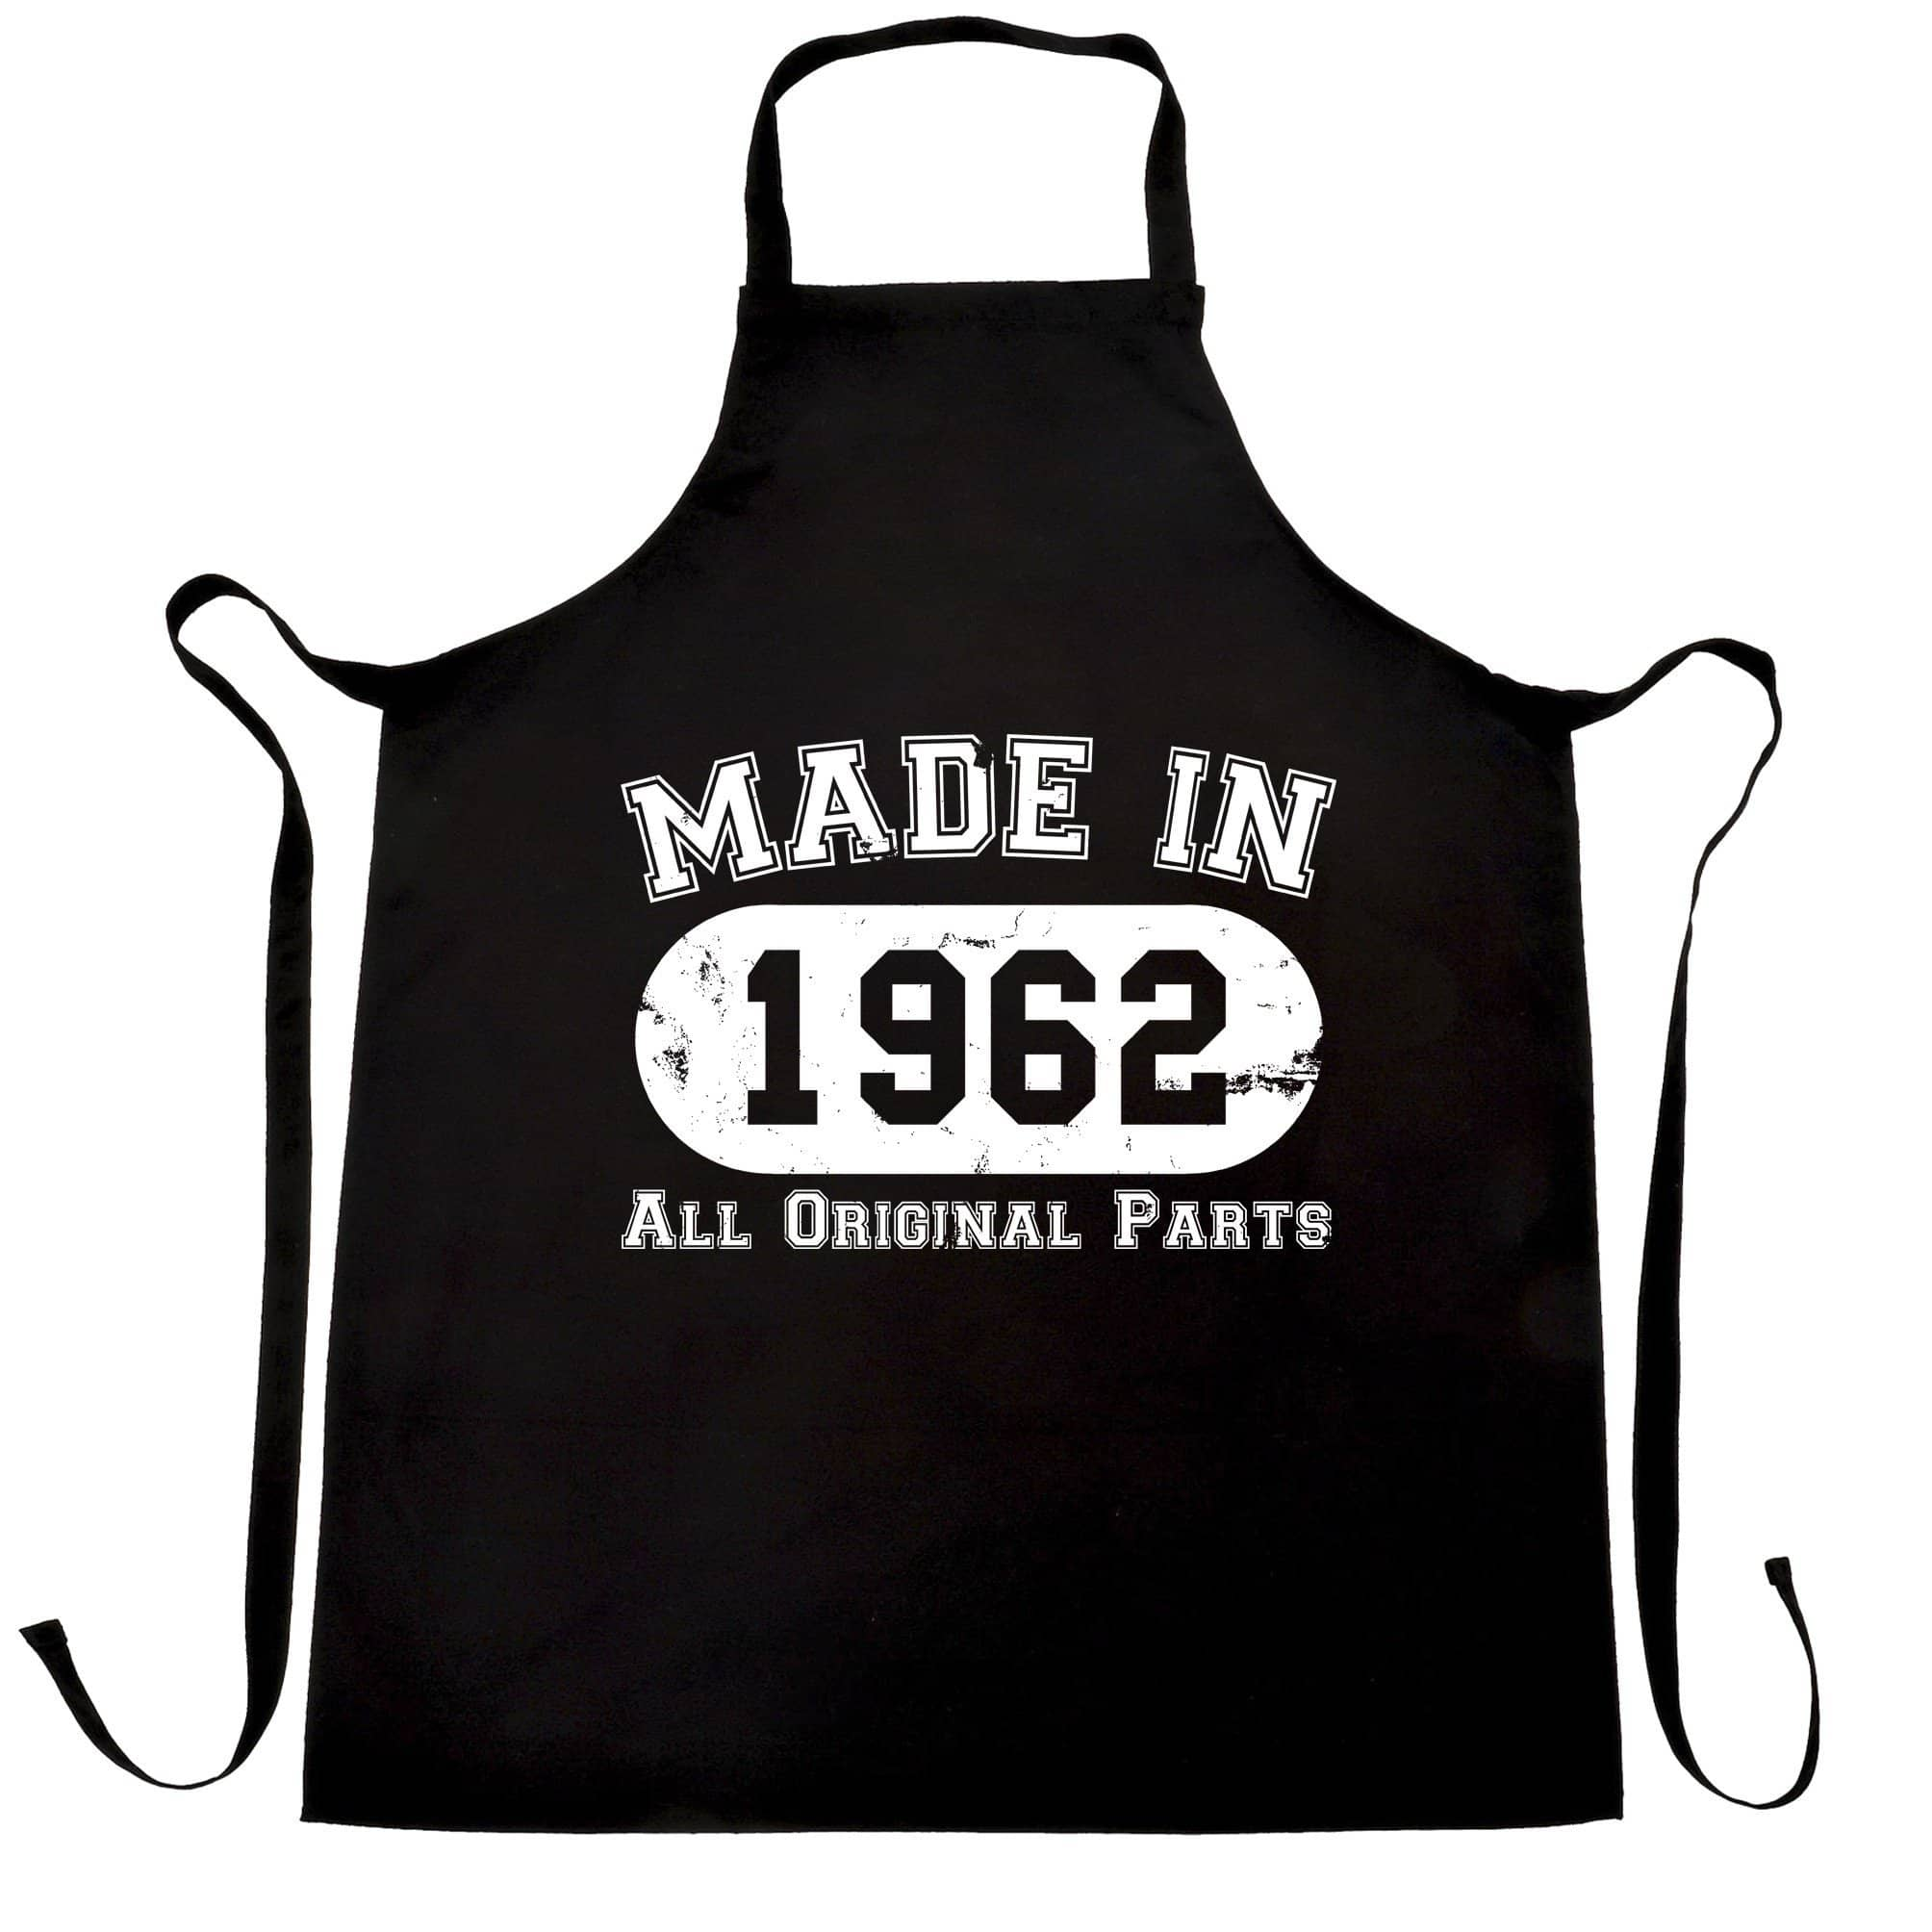 Made in 1962 All Original Parts Apron [Distressed]